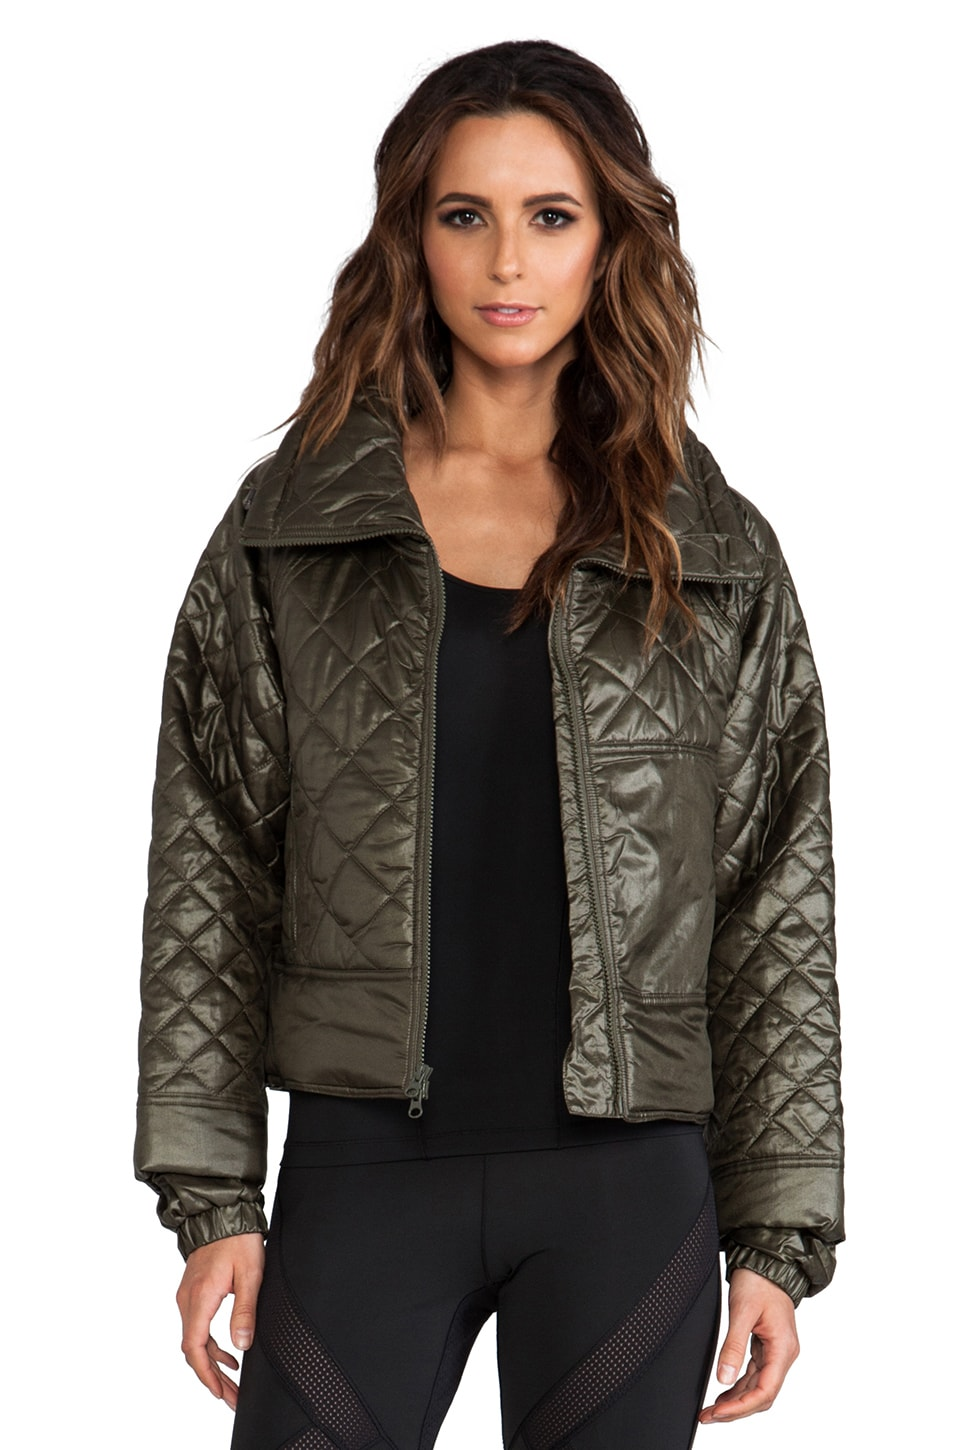 adidas by Stella McCartney ES Cropped Jacket in Earth Green